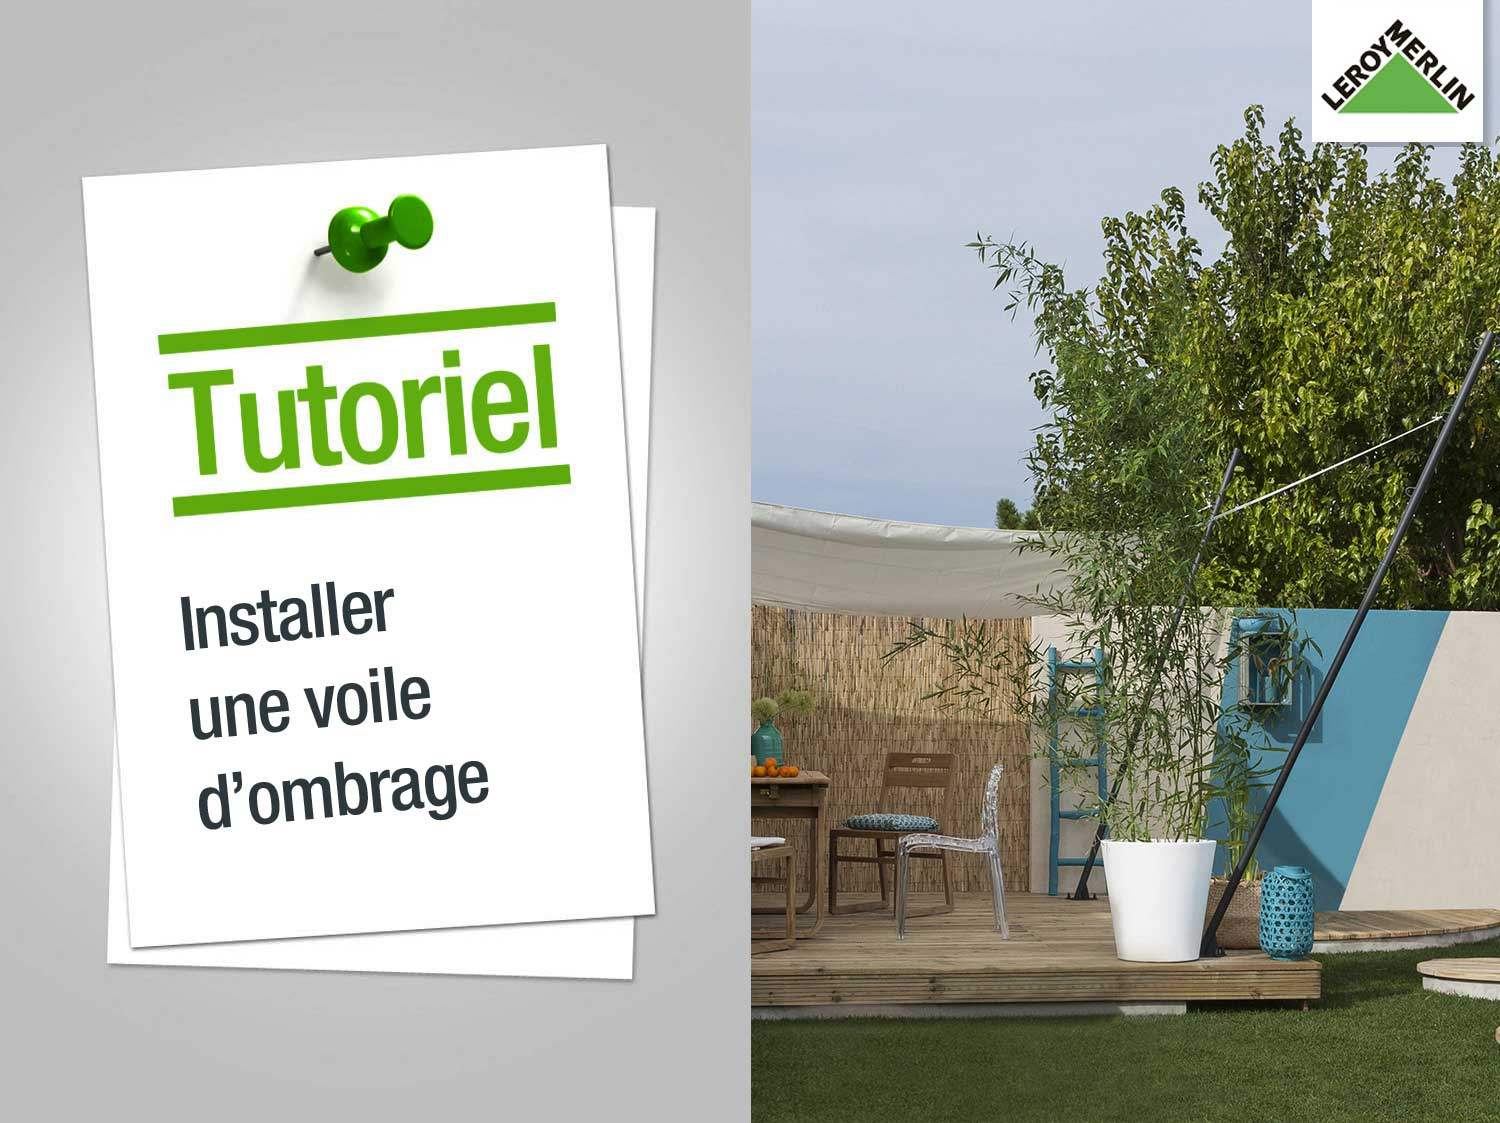 Toile Tendue Terrasse Comment Installer Une Voile D Ombrage Leroy Merlin